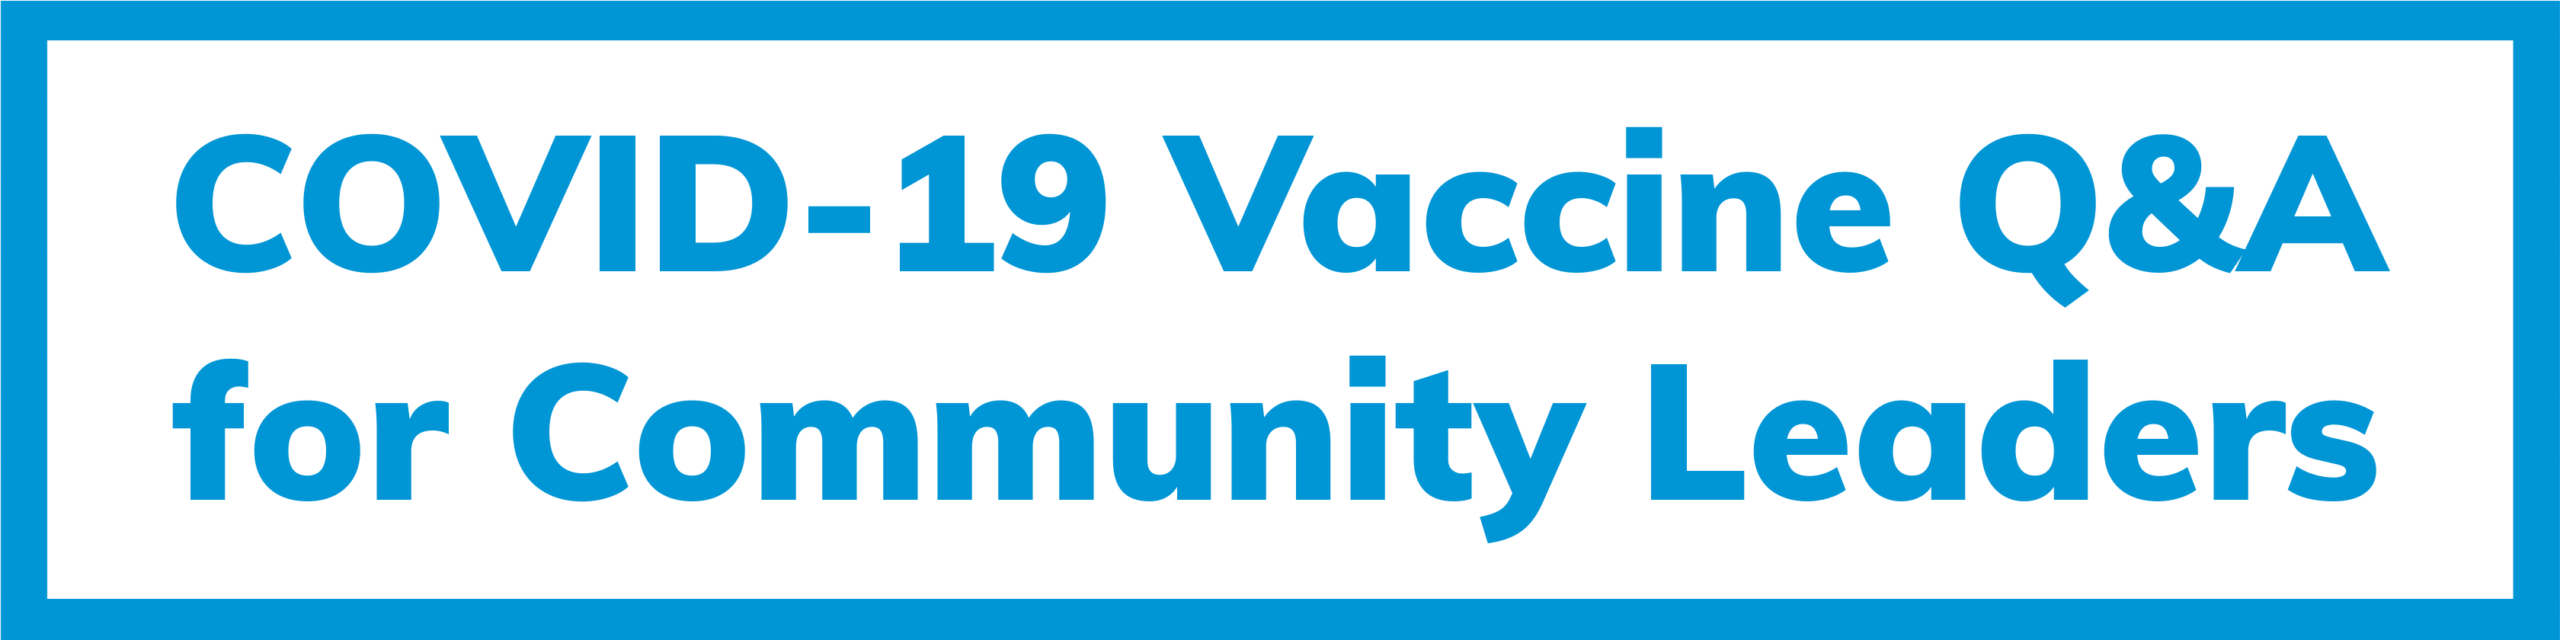 COVID-19 Vaccine Q&A for Community Leaders